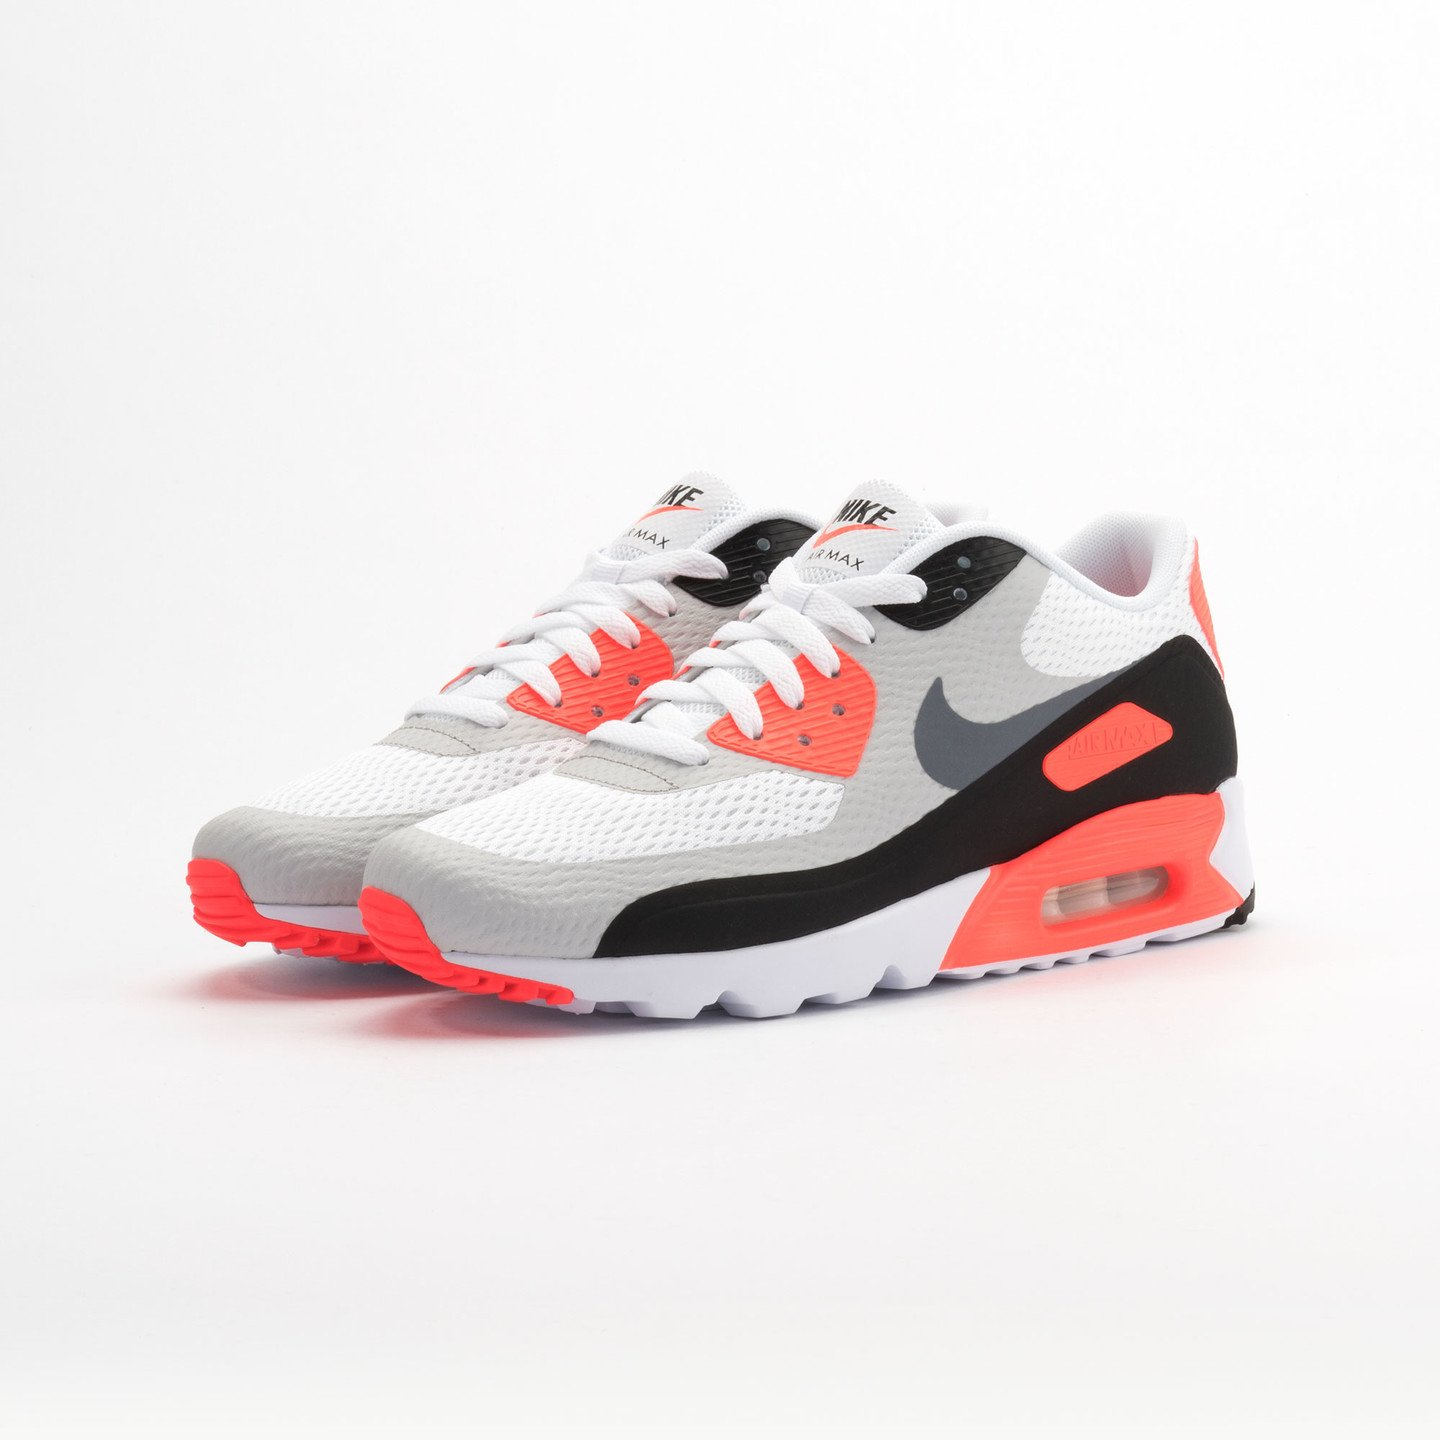 Nike Air Max 90 OG Essential White / Black / Infrared 819474-106-47.5